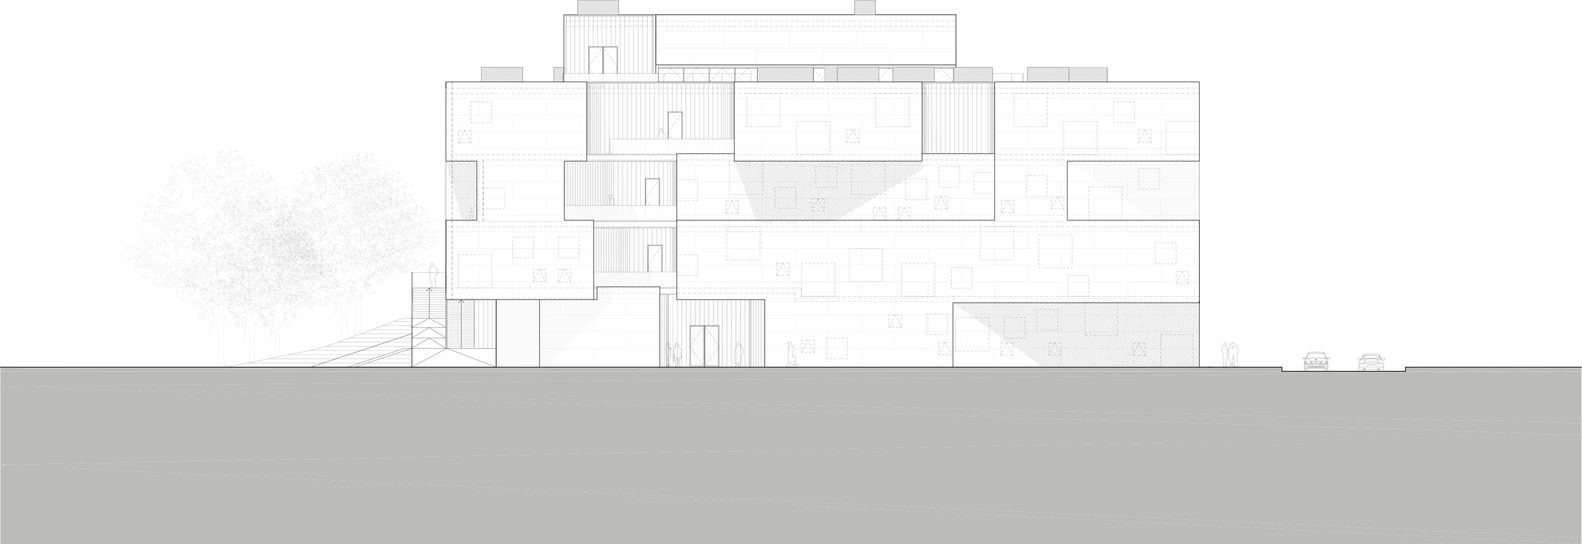 Gallery of Visual Arts Building at the University of Iowa / Steven Holl Architects - 20